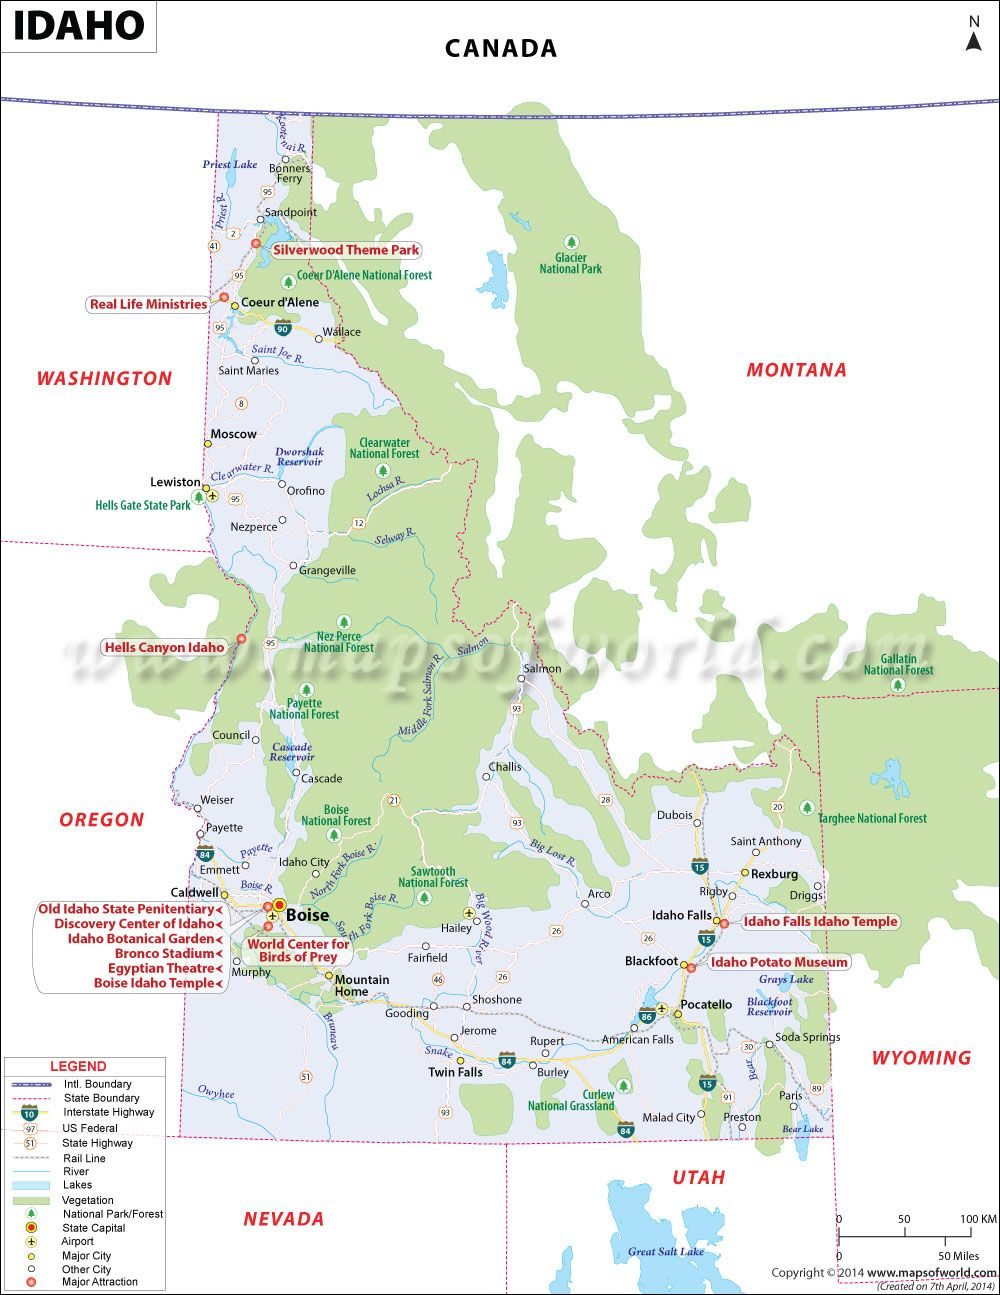 Idaho Map Showing The Major Travel Attractions Including Cities - Map of colorado ski resorts and cities